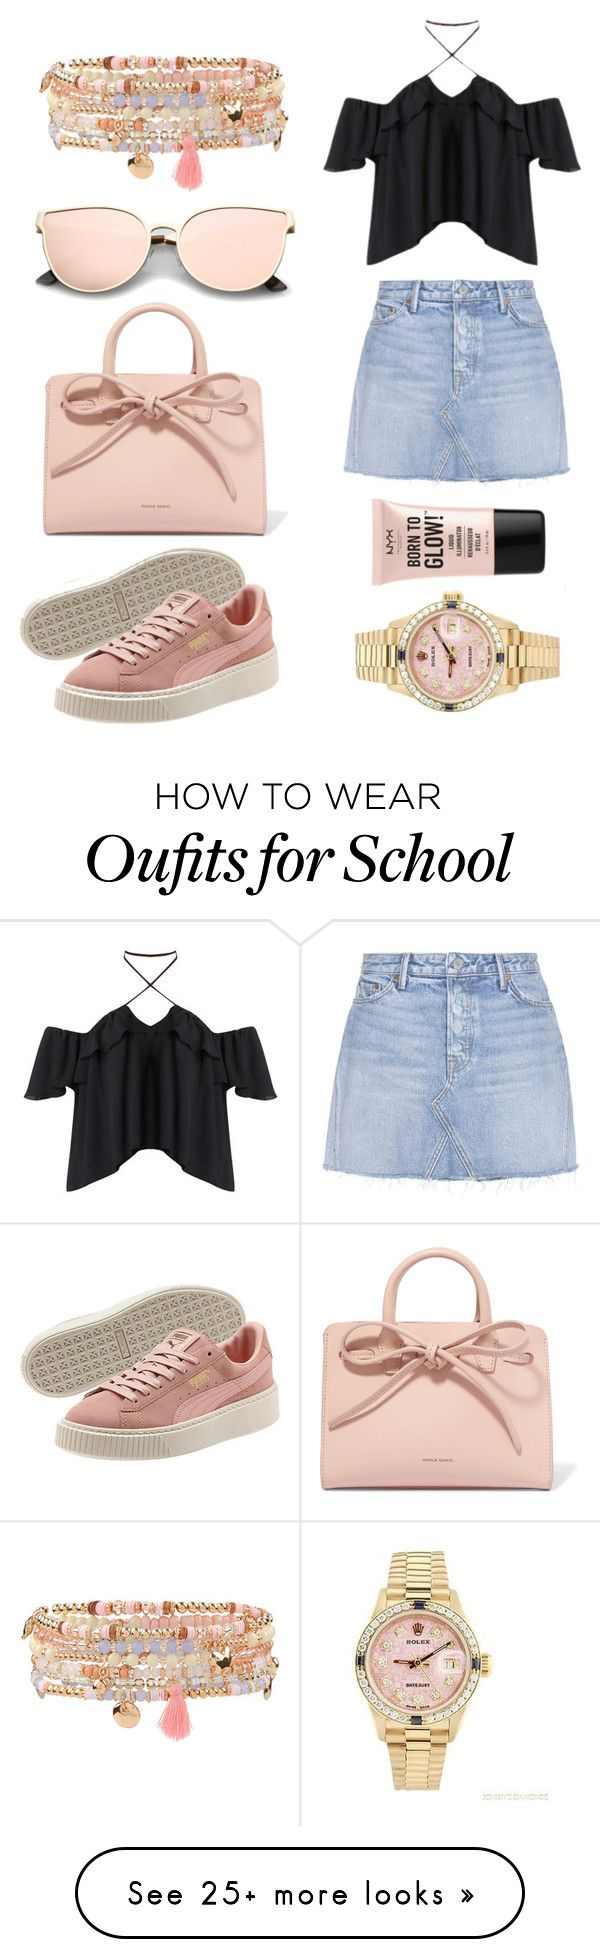 """""""School """" by milsky on Polyvore featuring GRLFRND, Mansur Gavriel, Rolex, NYX and Accessorize"""